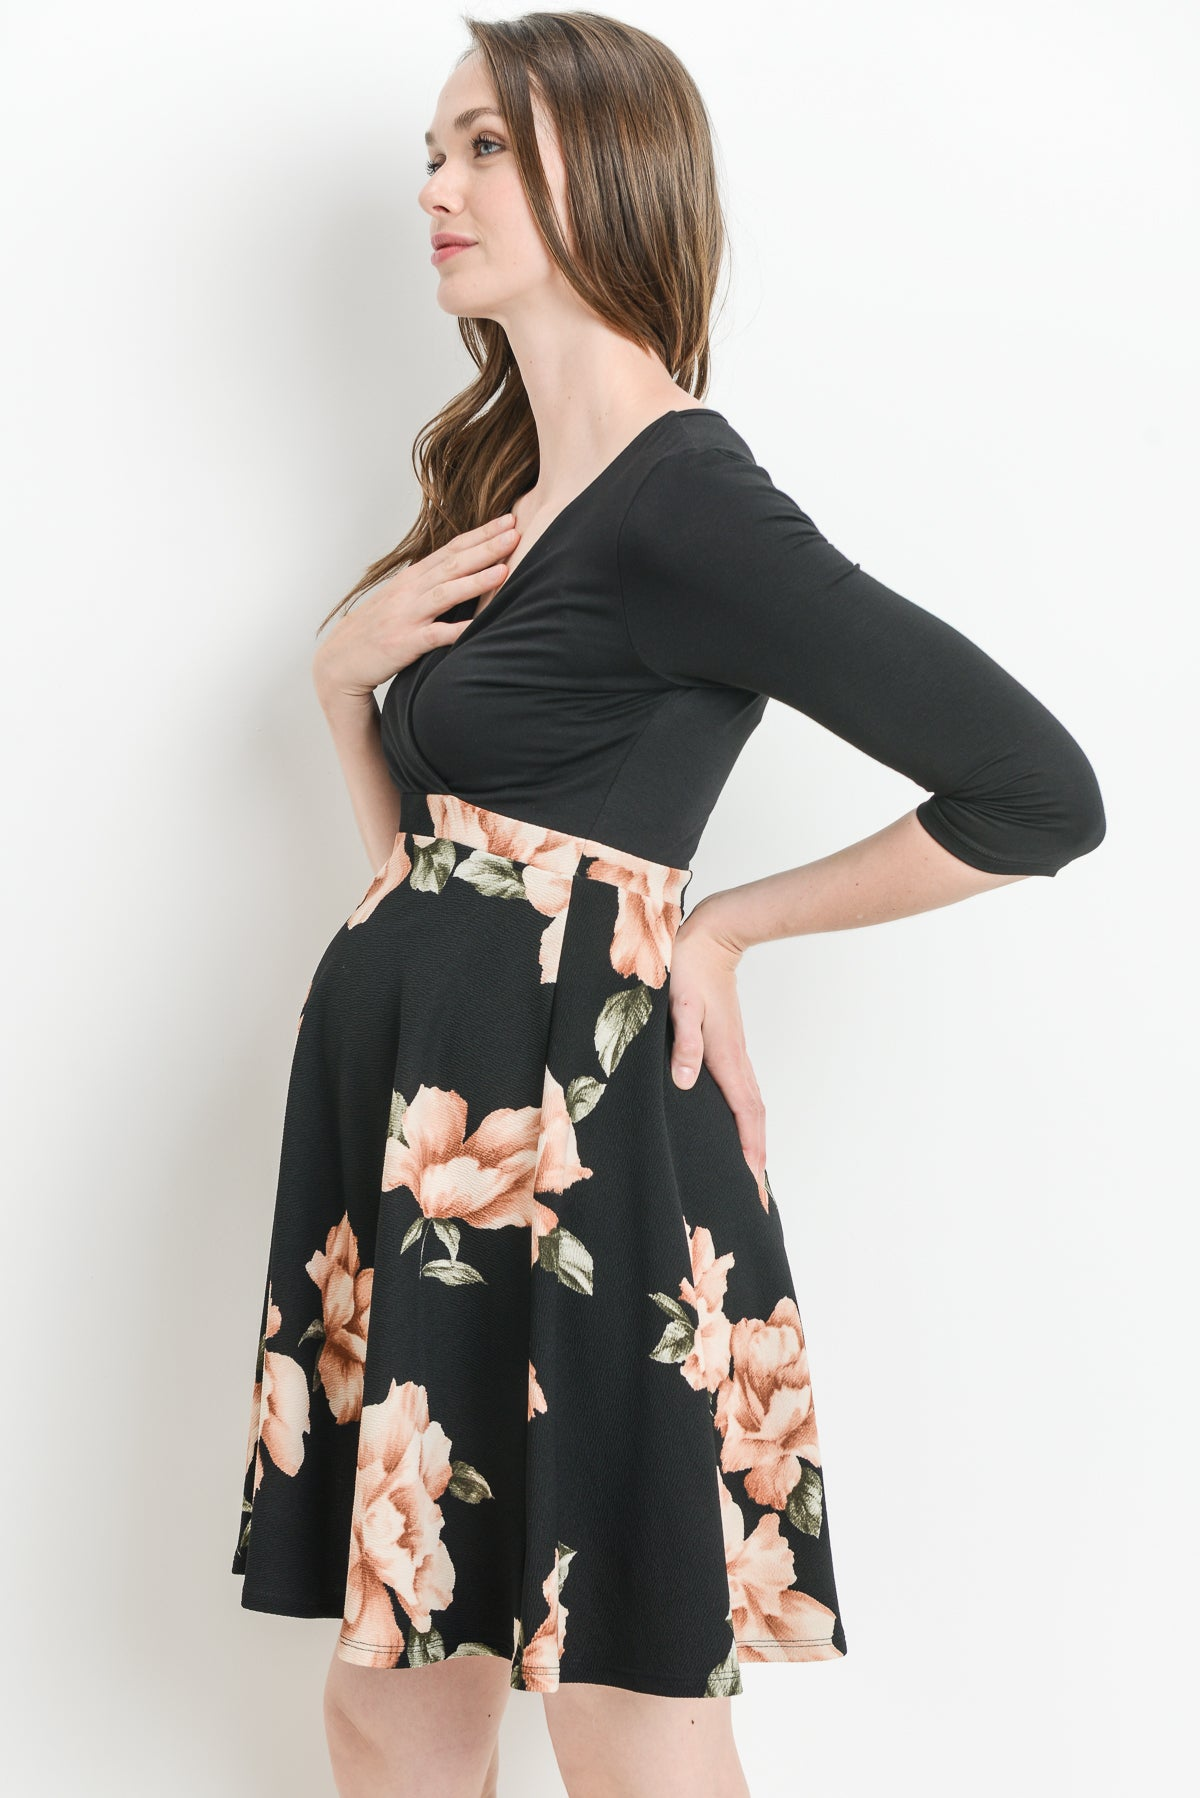 Floral Surplice maternity /nursing dress